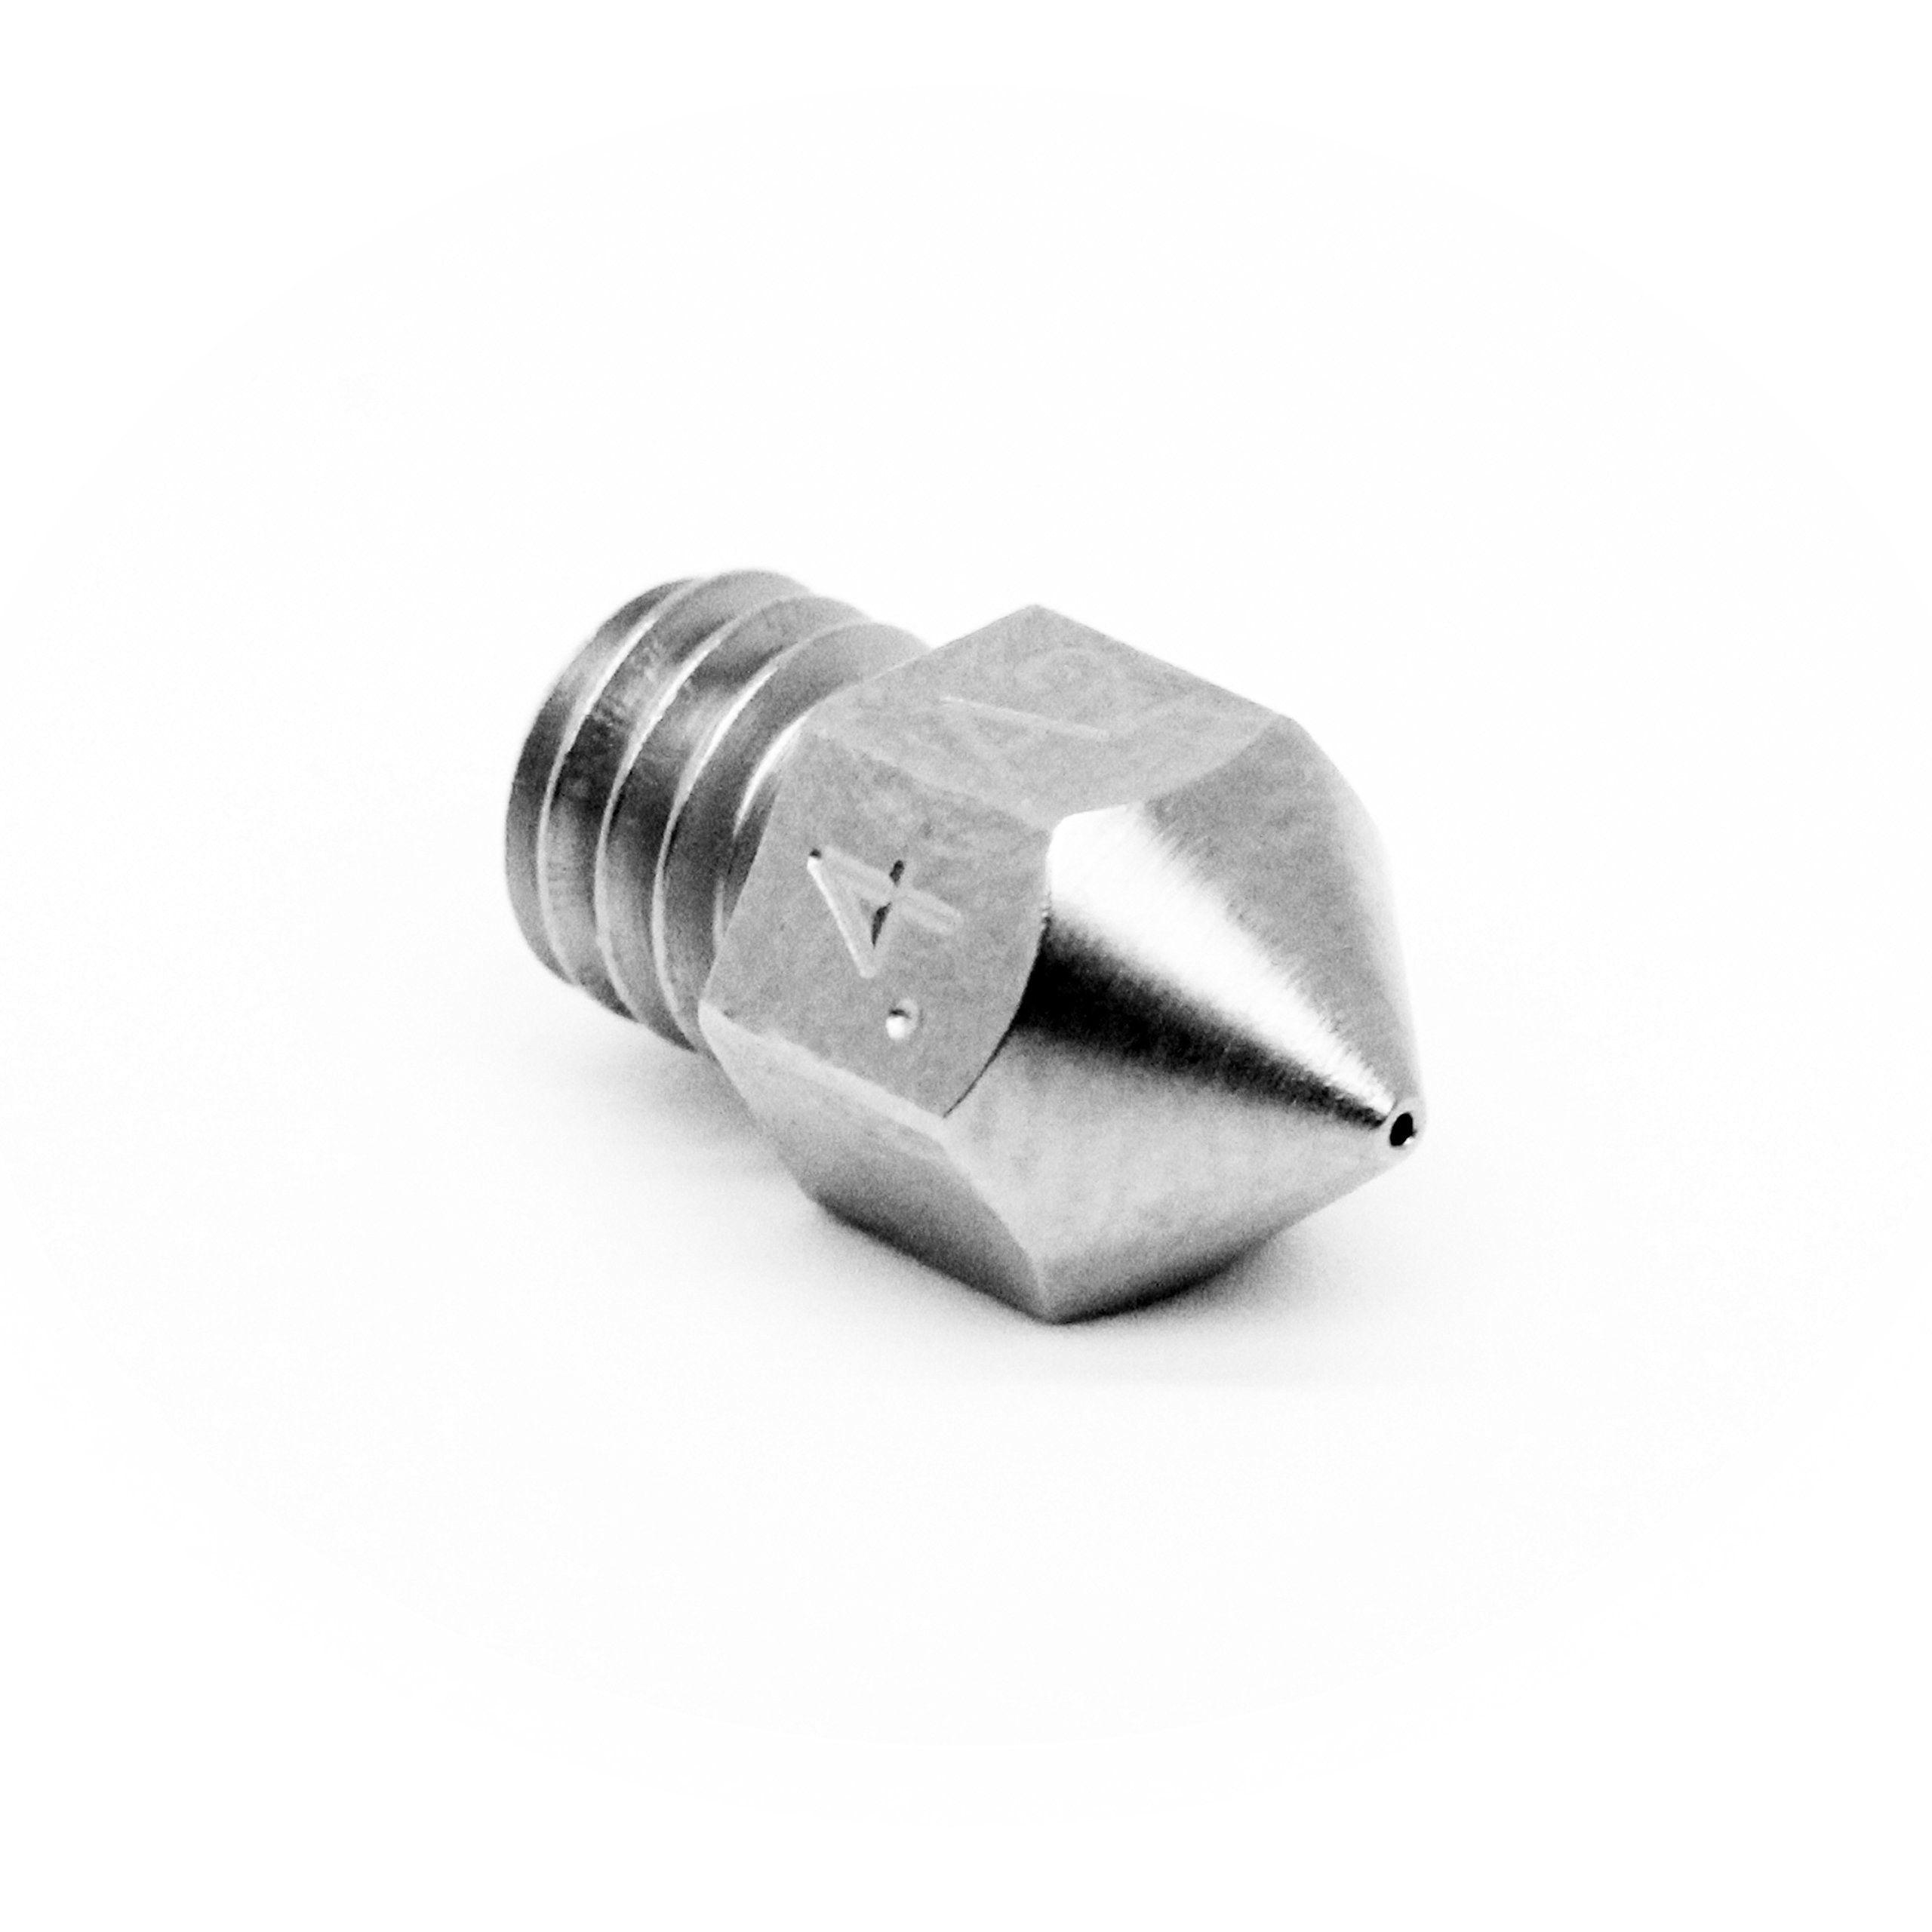 Micro Swiss MK8 Plated A2 Tool Steel Wear Resistant Nozzle (MakerBot, CraftBot, Creality CR10, Tevo Tornado) .4mm